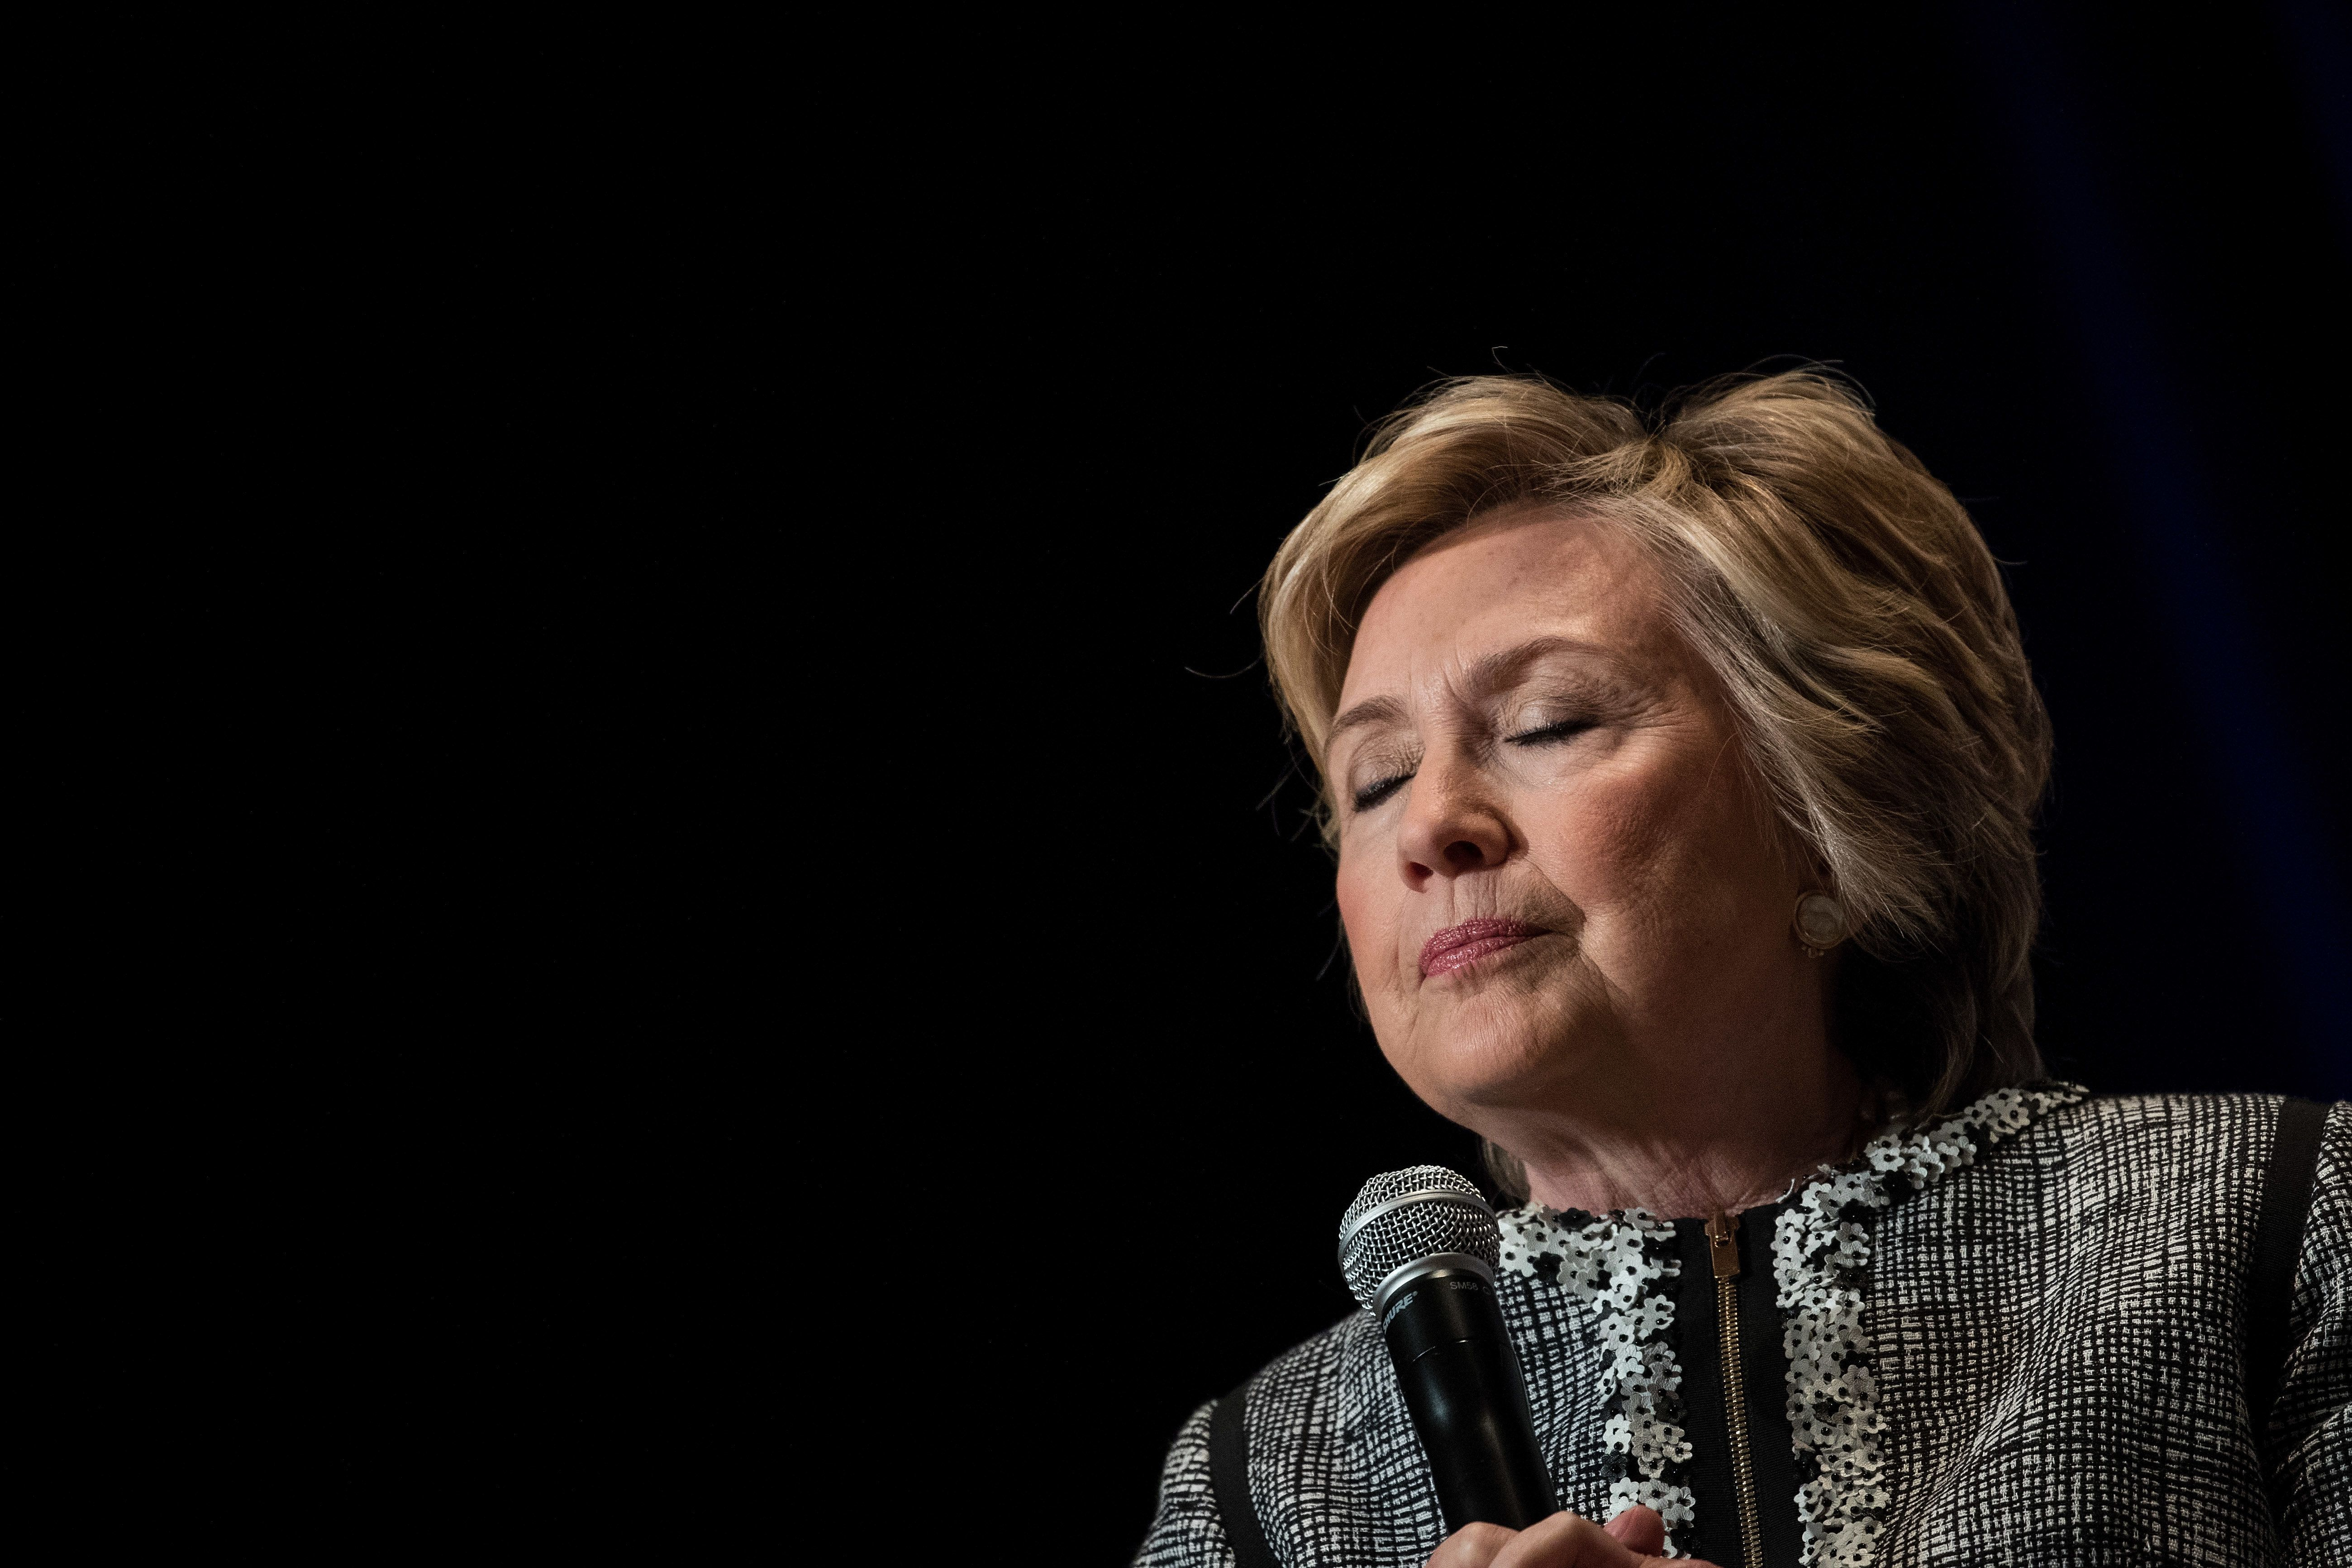 Former Secretary of State Hillary Clinton pauses while speaking at BookExpo 2017 in New York City. Shewas at the conven